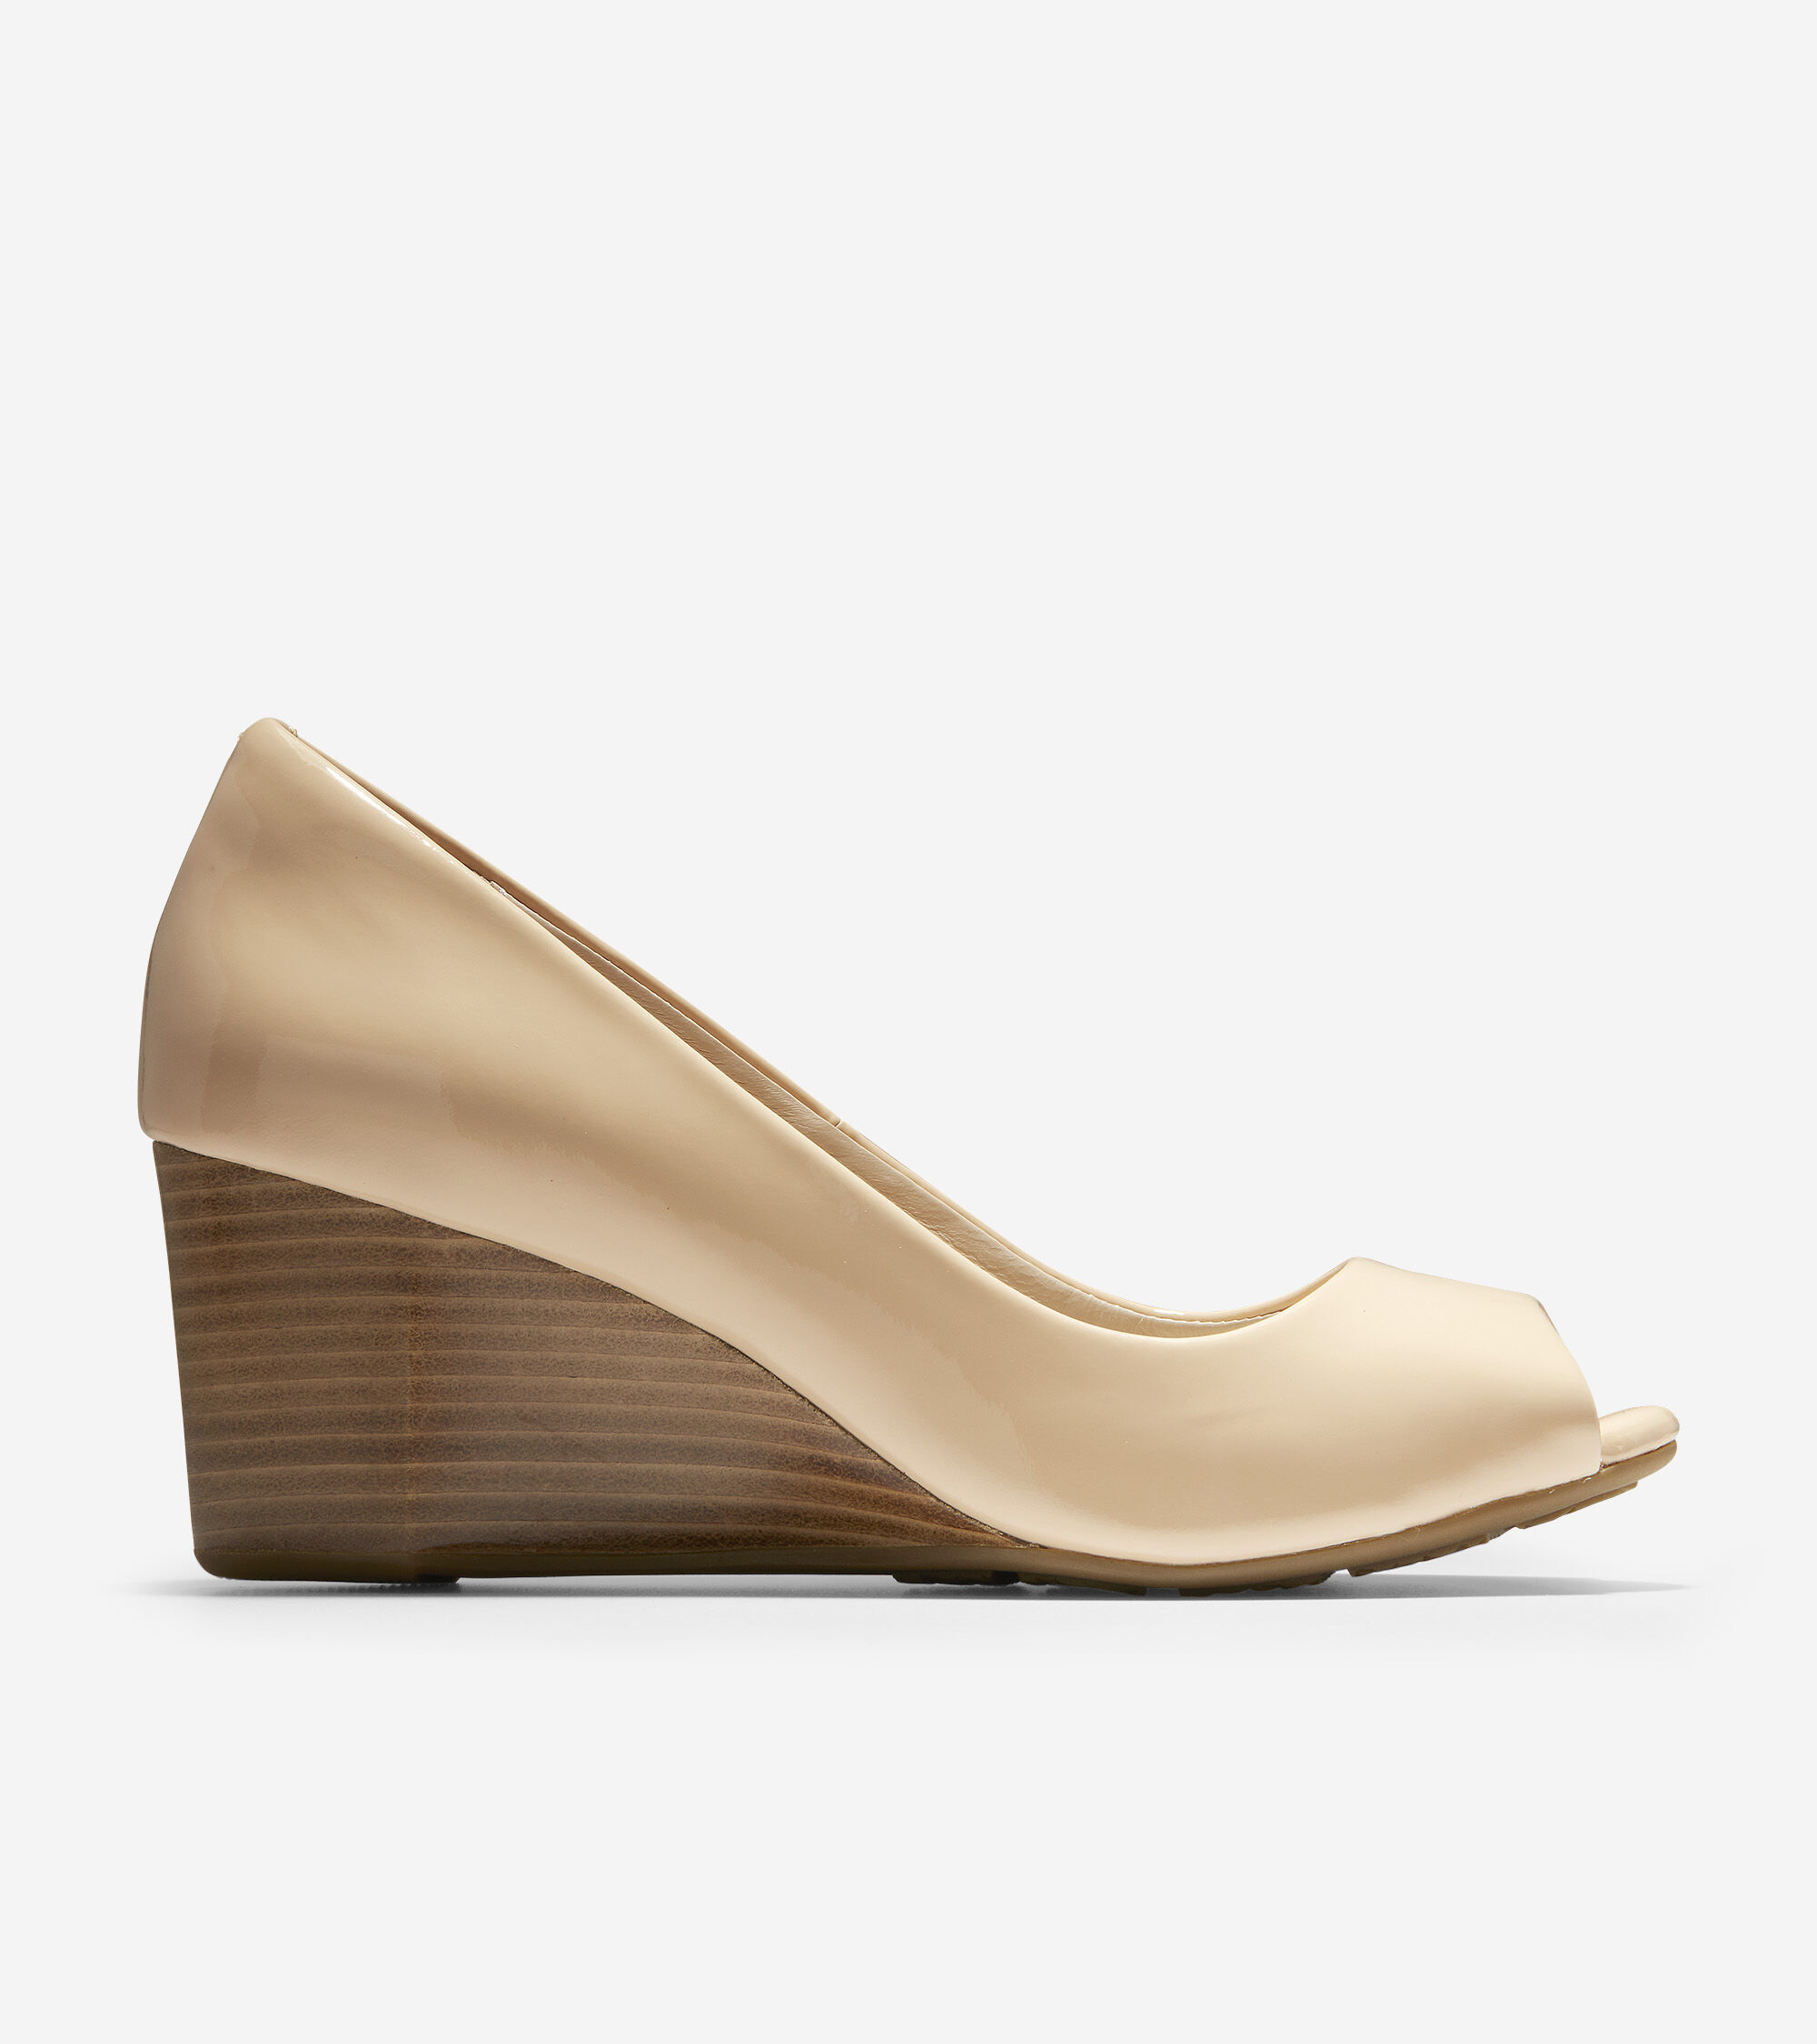 Wedges > Sadie Open Toe Wedge (65mm)